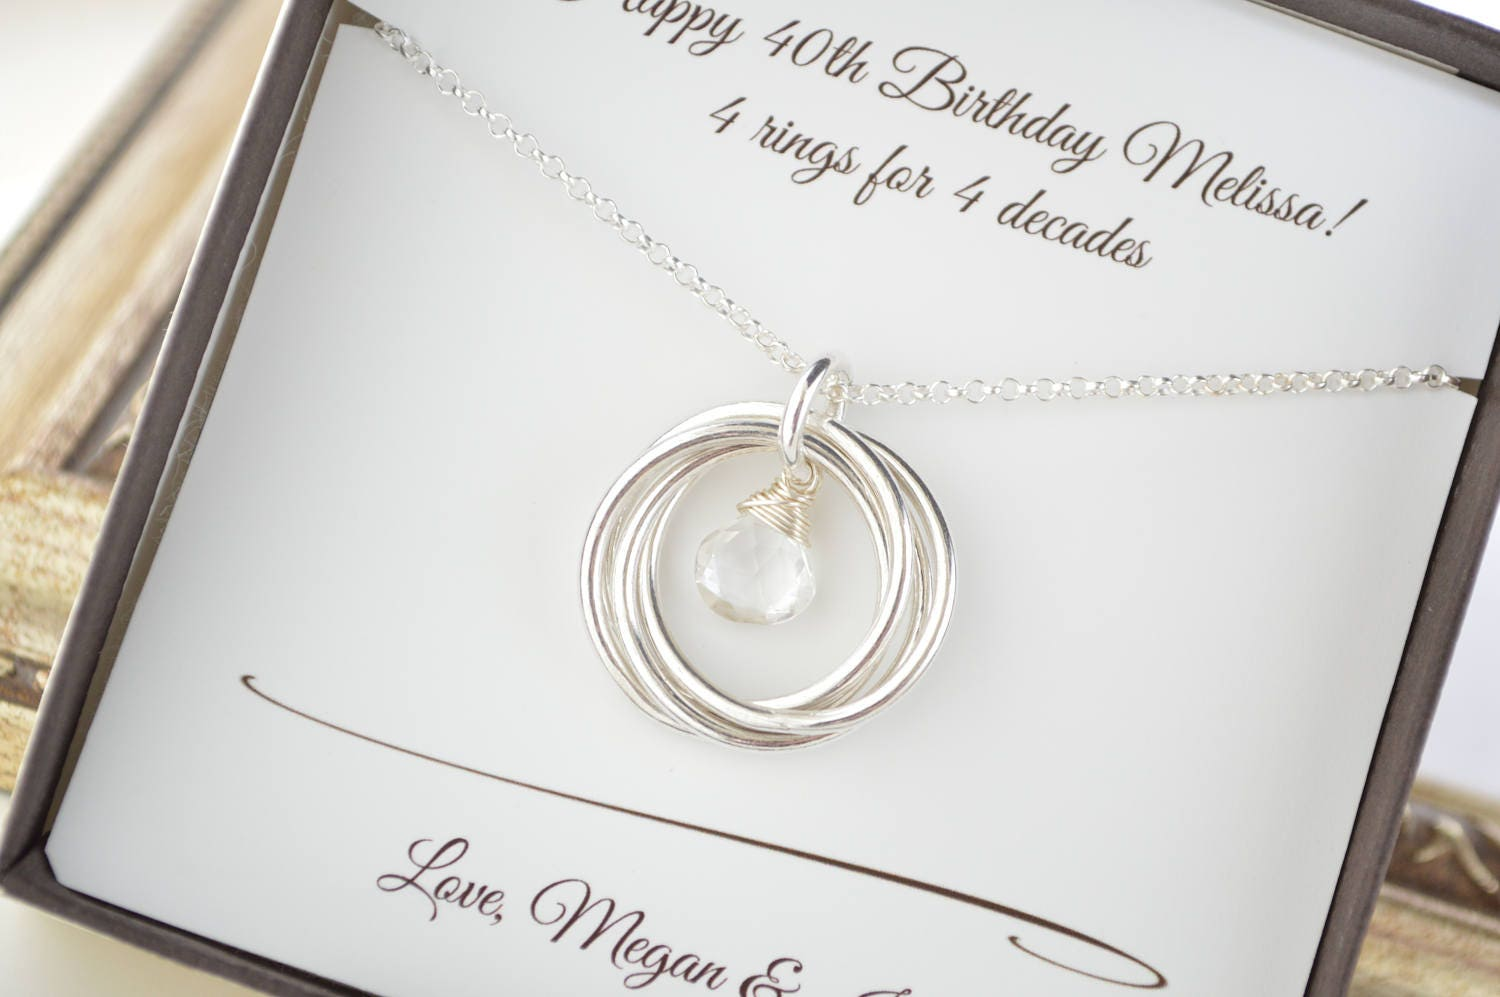 Birthday Gift Her Sister Jewelry 4 Best Friends Neck Gallery Photo